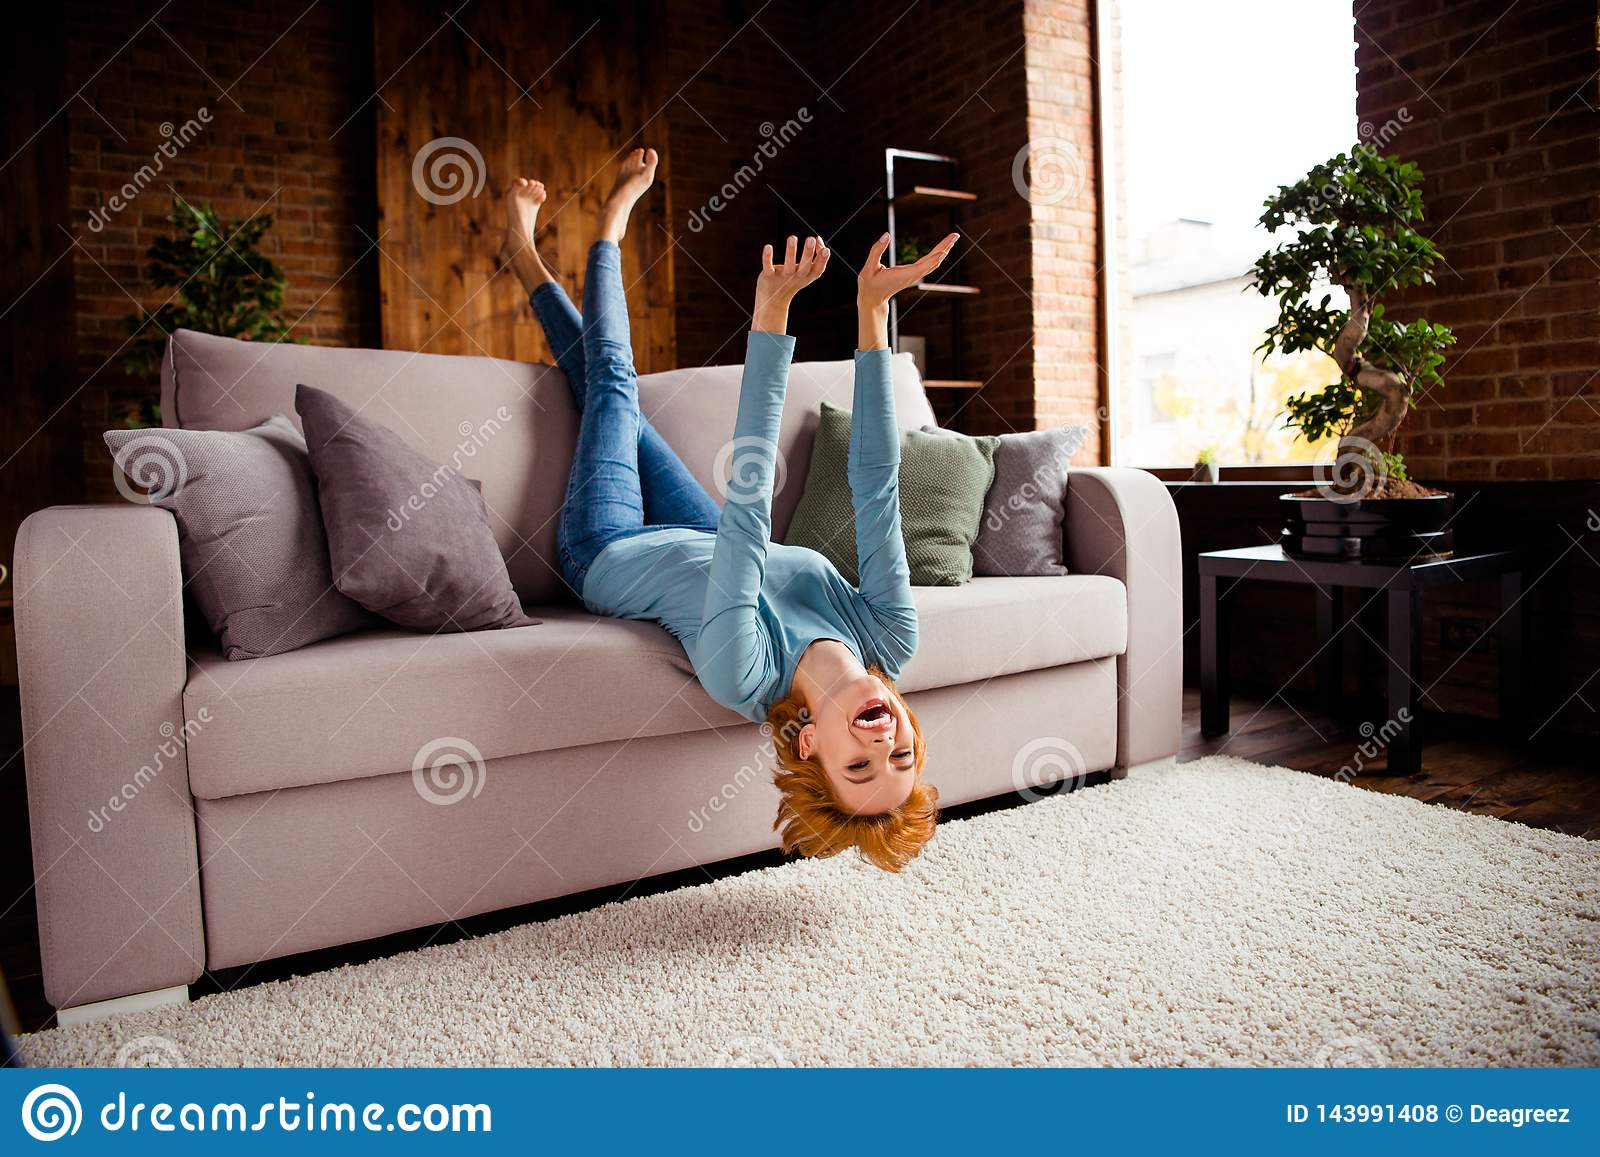 Full length body size photo beautiful she her lady hands arms legs raised upside down rejoicing having best day off wear